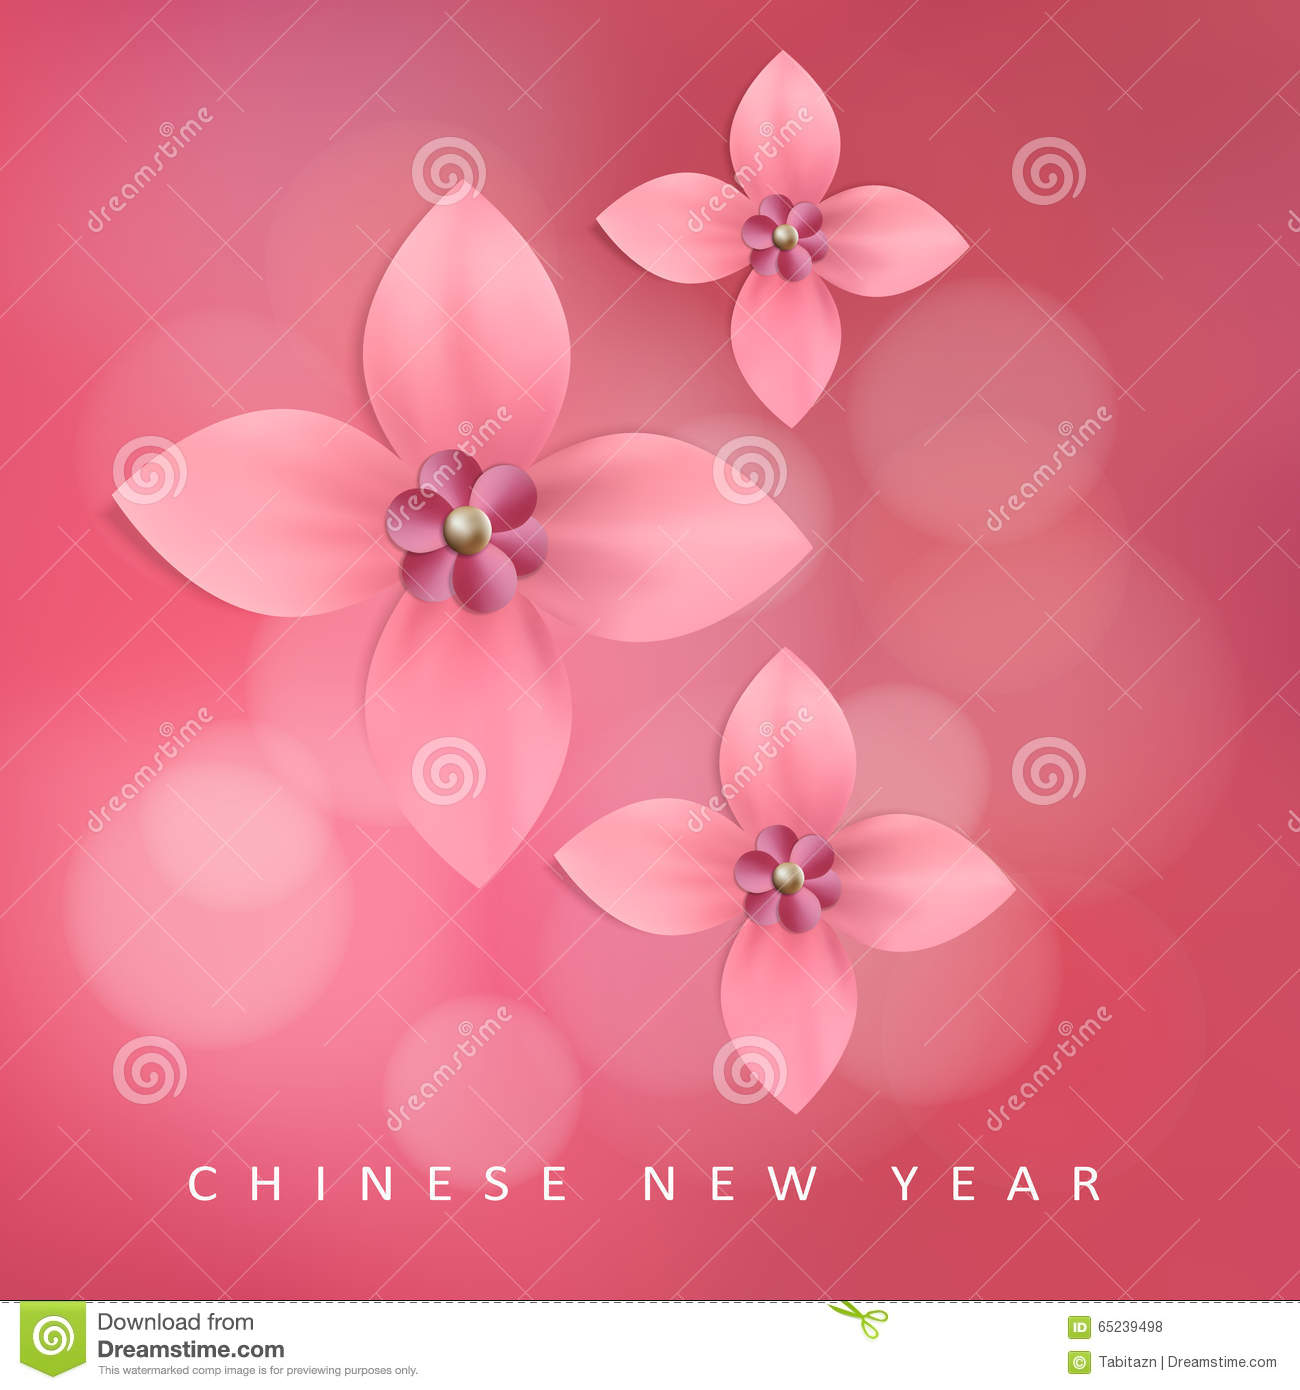 Chinese New Year Greeting Card With Pink Paper Flowers